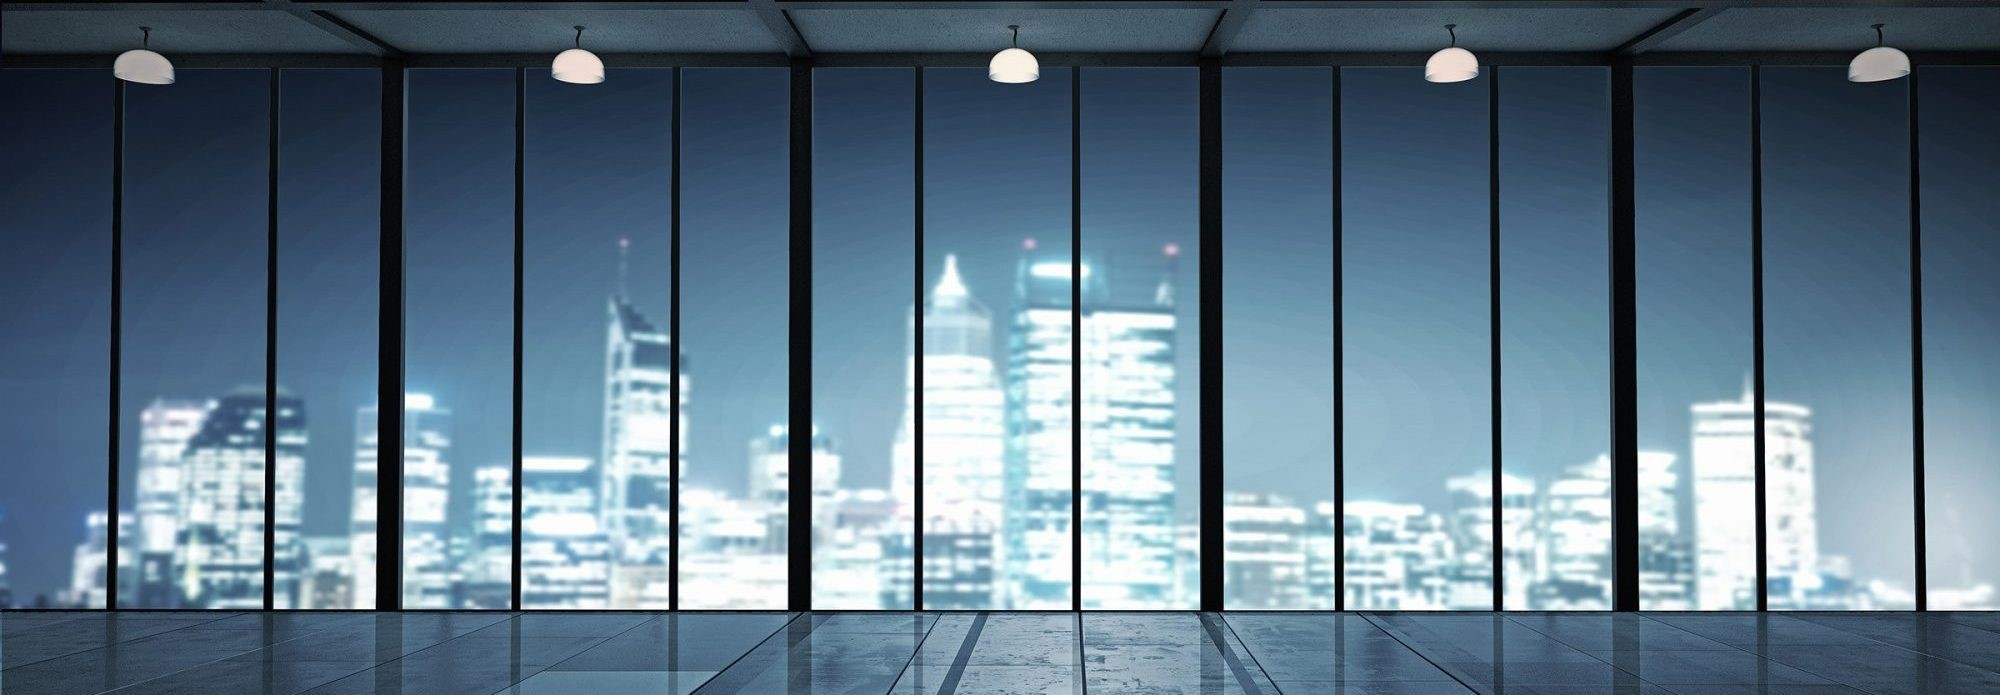 Utility Expense Management Services | empty office space with view of lit up city skyline | Cost Control Associates